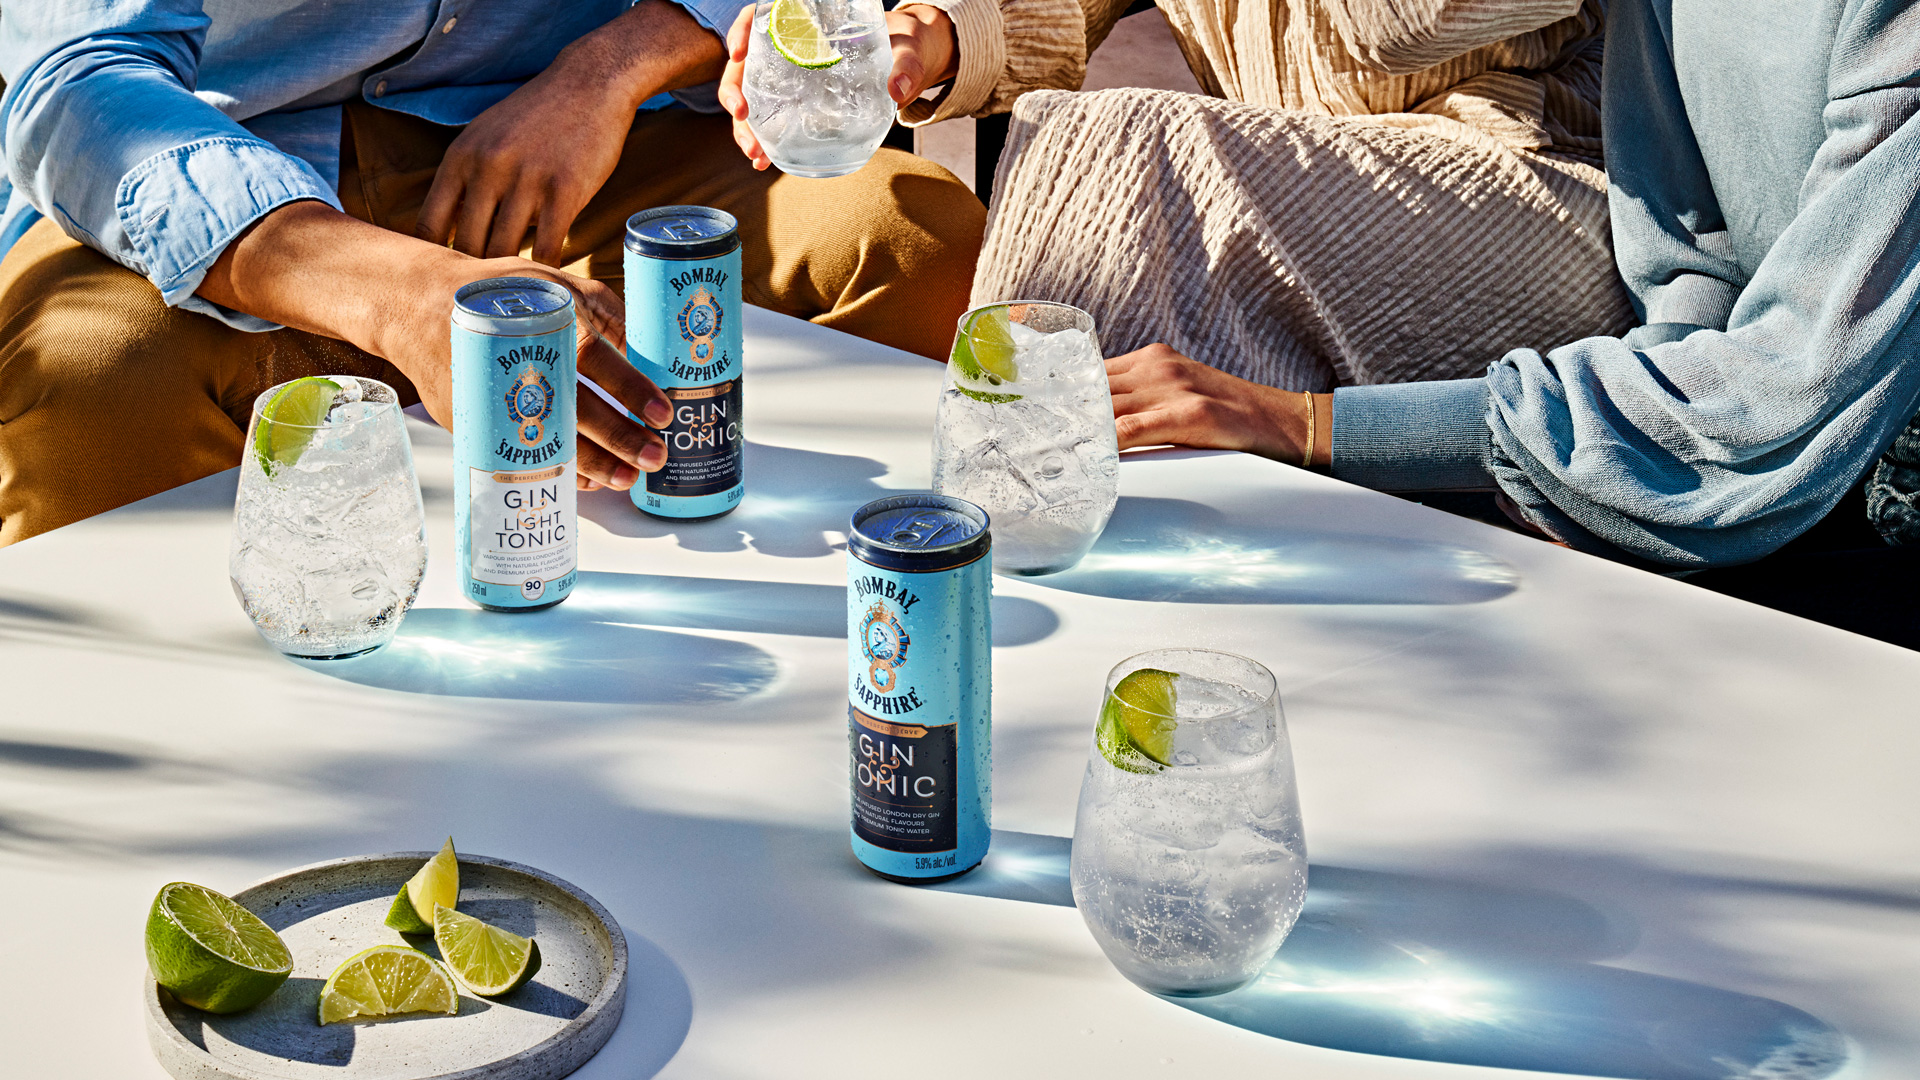 bombay sapphire gin and tonic cans on a table amid plates with hands in the background